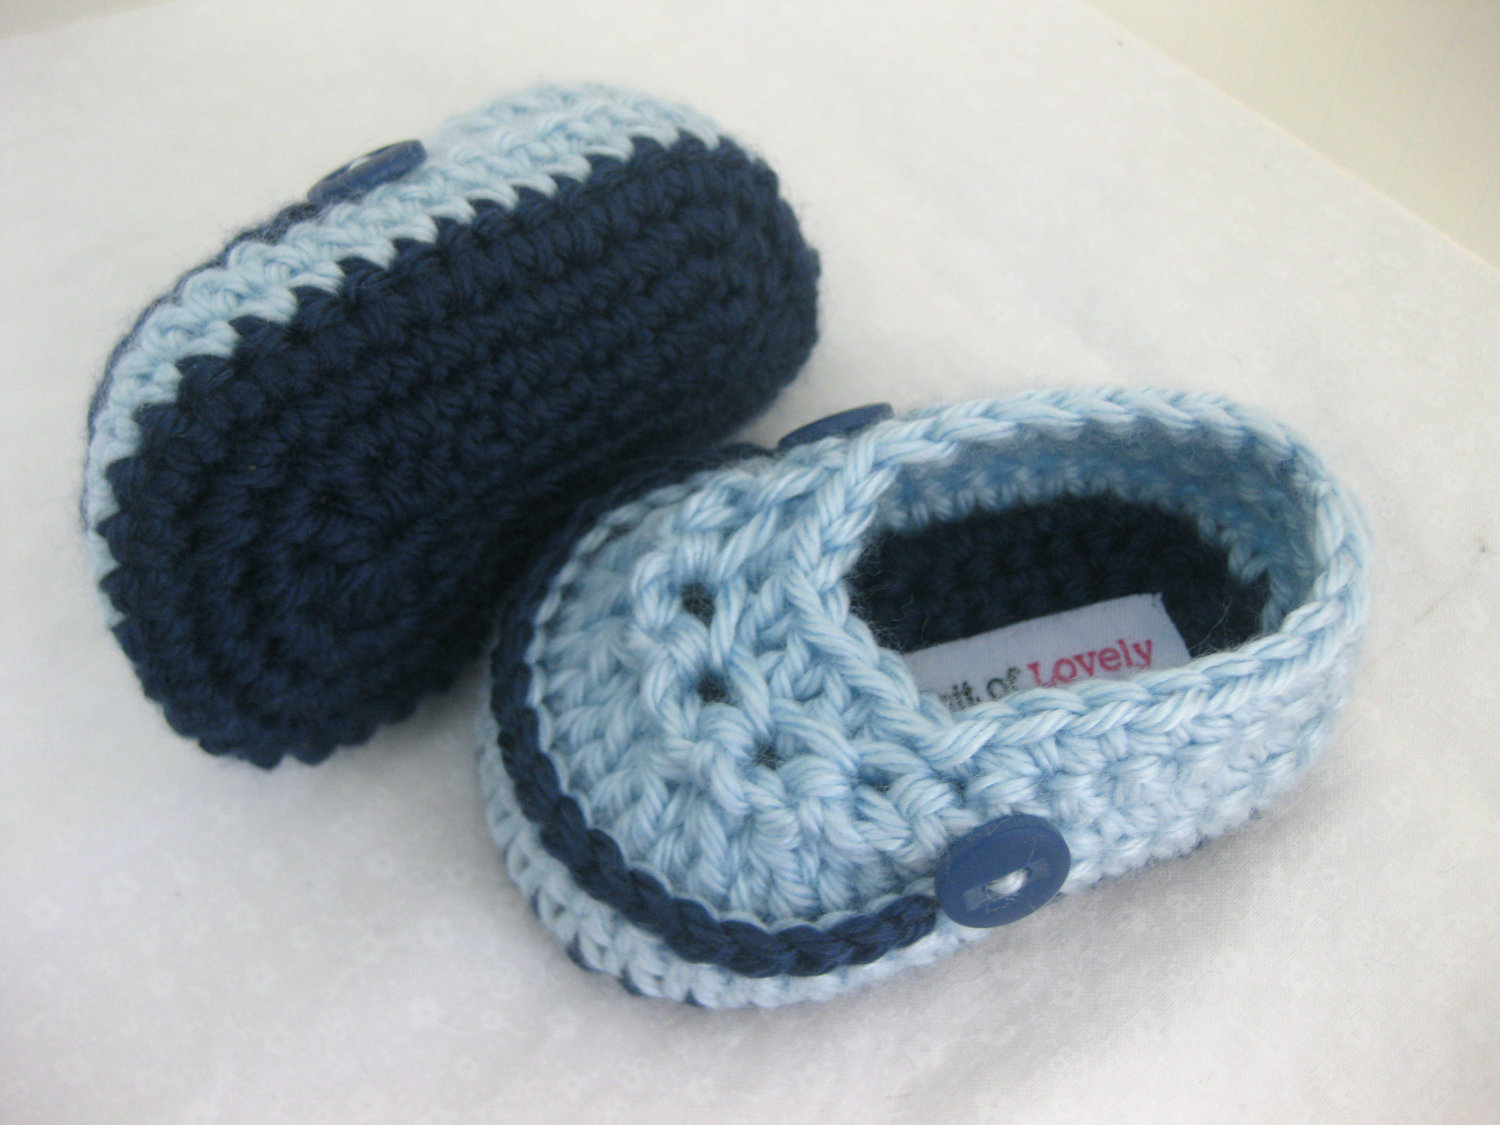 Baby Infant Girl Boy Soft Sole Crib Toddler Shoes Anti-slip Crochet Knit Shoes Boots Prewalker M. Lovely, Crochet Knit Hollow Out Socks Shoes Perfect For your baby. Material: Knit.